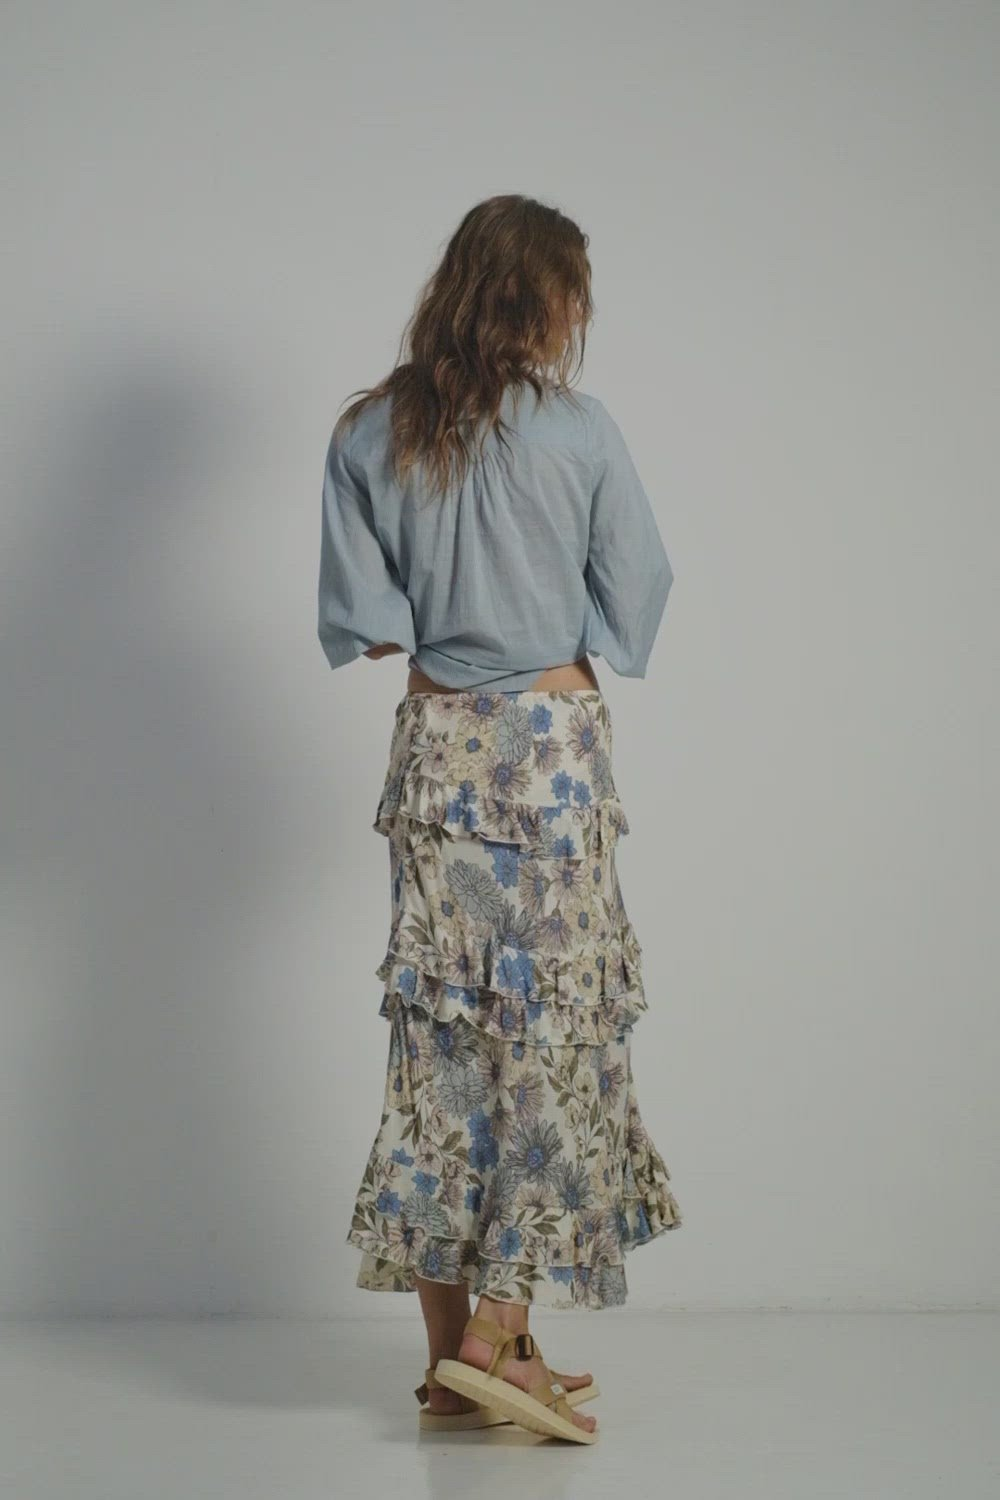 A woman wearing floral skirt and a blue blouse by Lilya